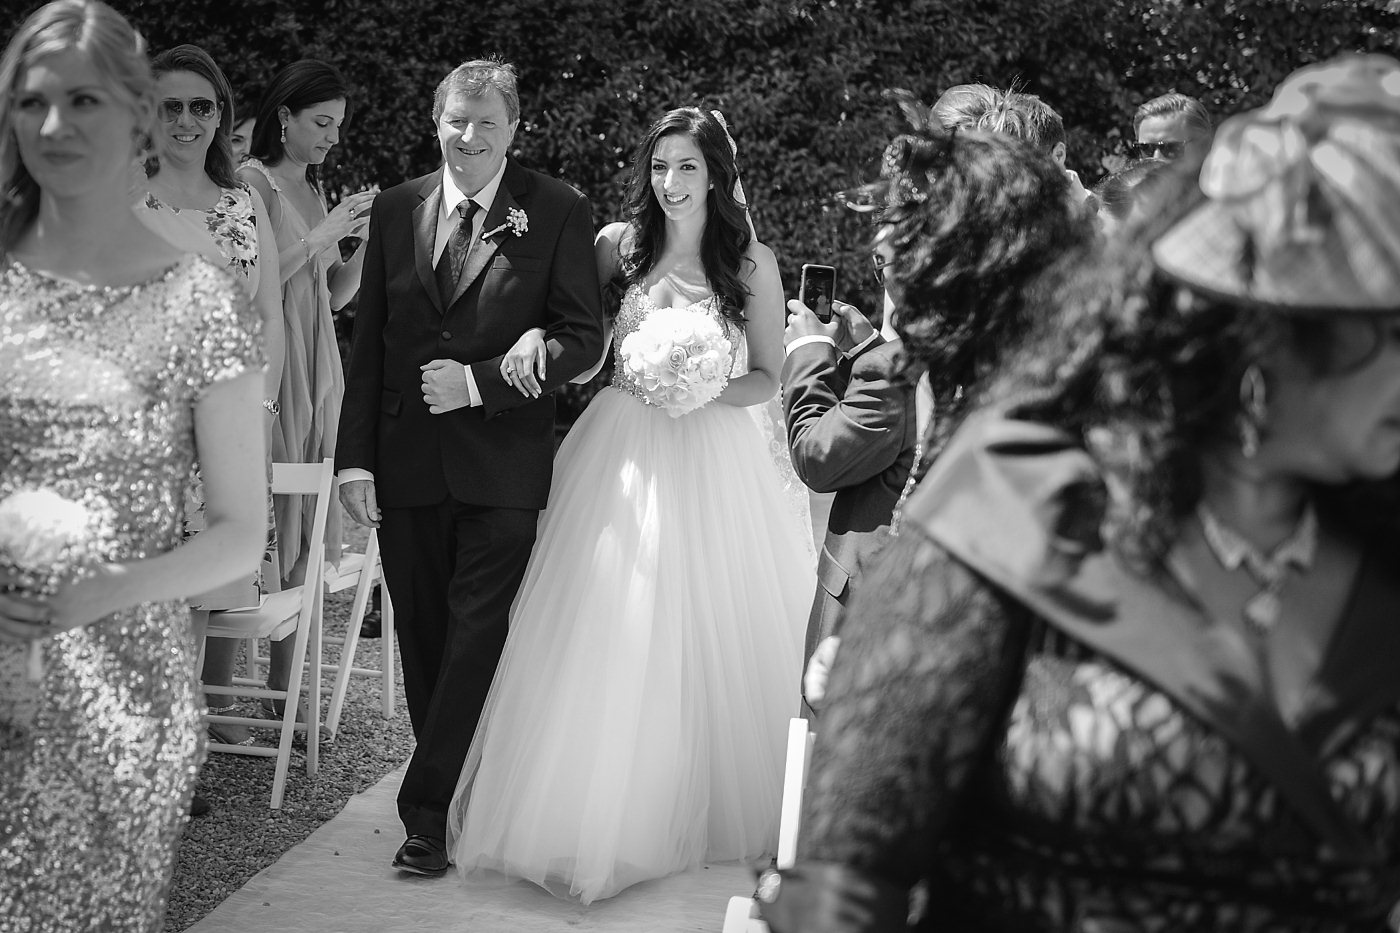 wedding photo tremezzo_02.jpg